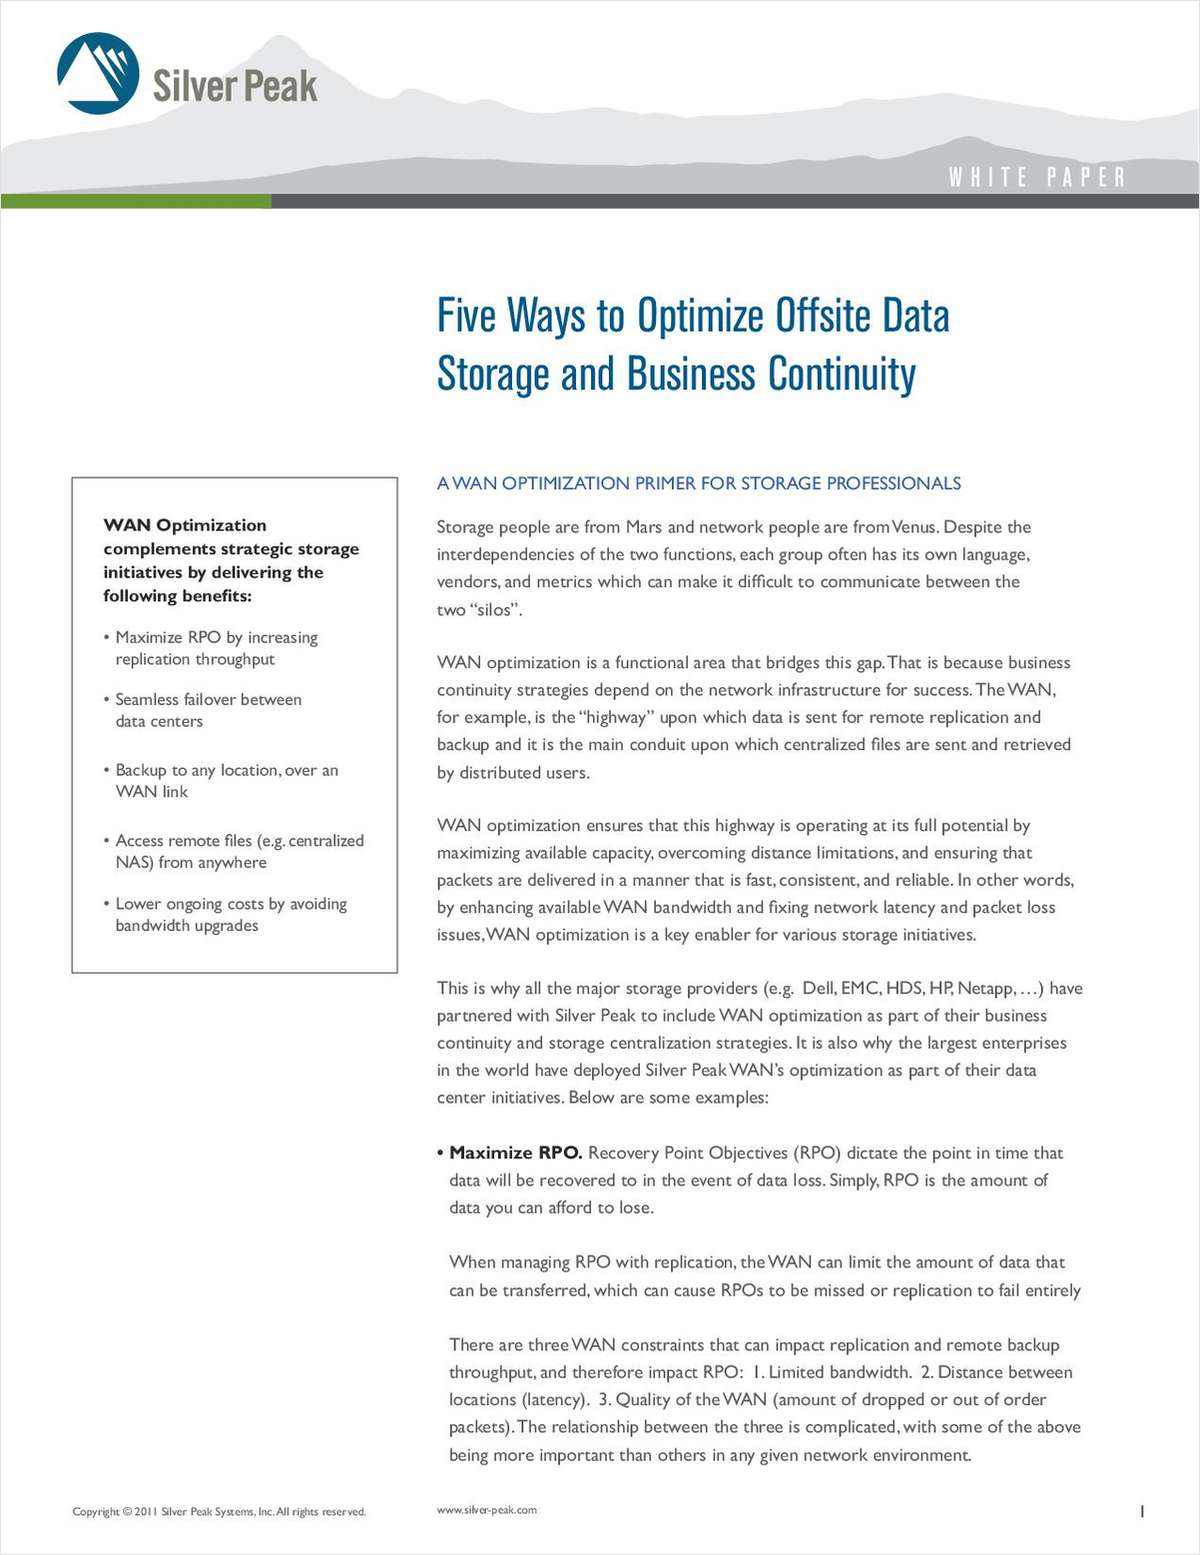 Five Ways to Optimize Offsite Storage and Business Continuity: A WAN Optimization Primer for Storage Professionals